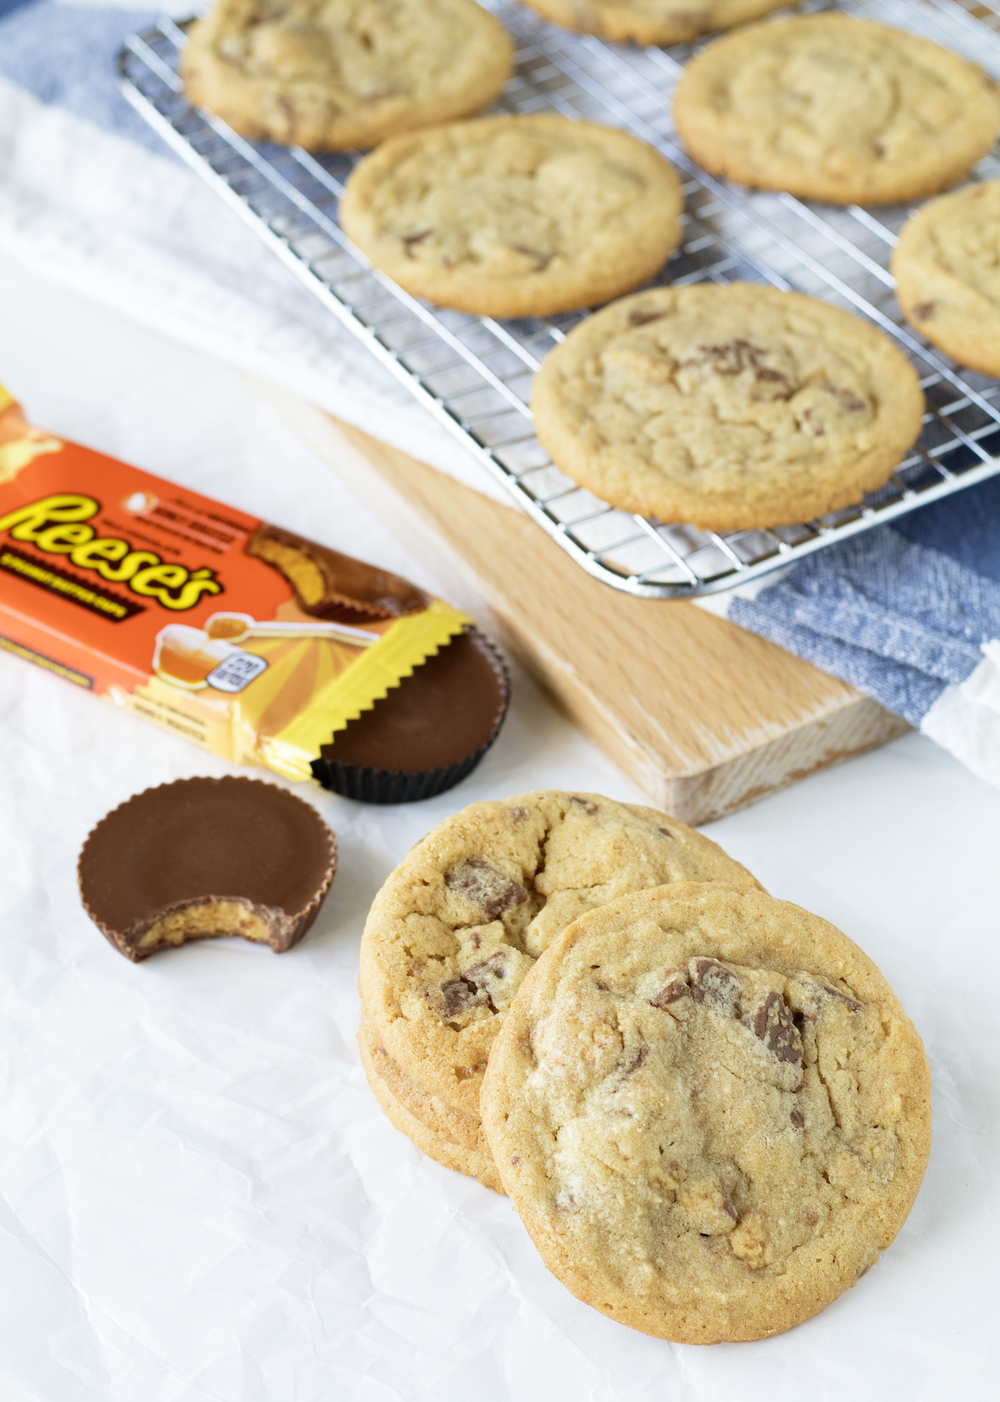 Honey Roasted Reese's Peanut Butter Cookies | Sarah Makes Stuff